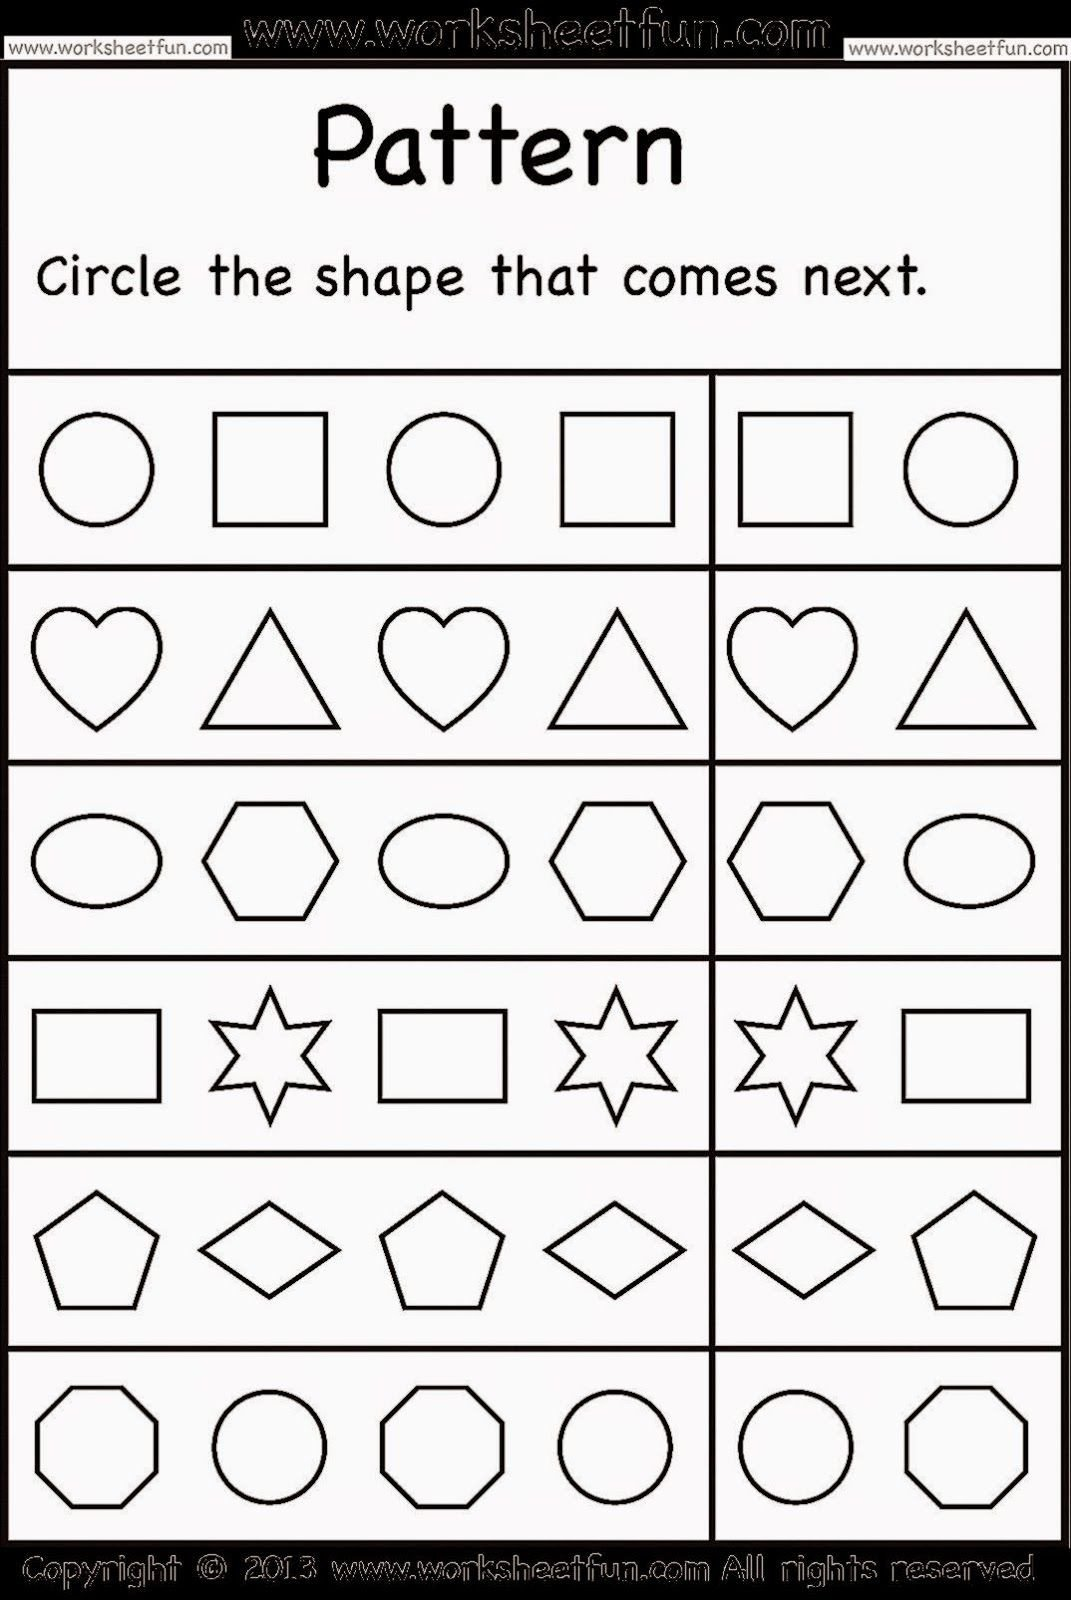 Geometric Shape Patterns Worksheet Worksheetfun Loads Of Free Printable Worksheets for